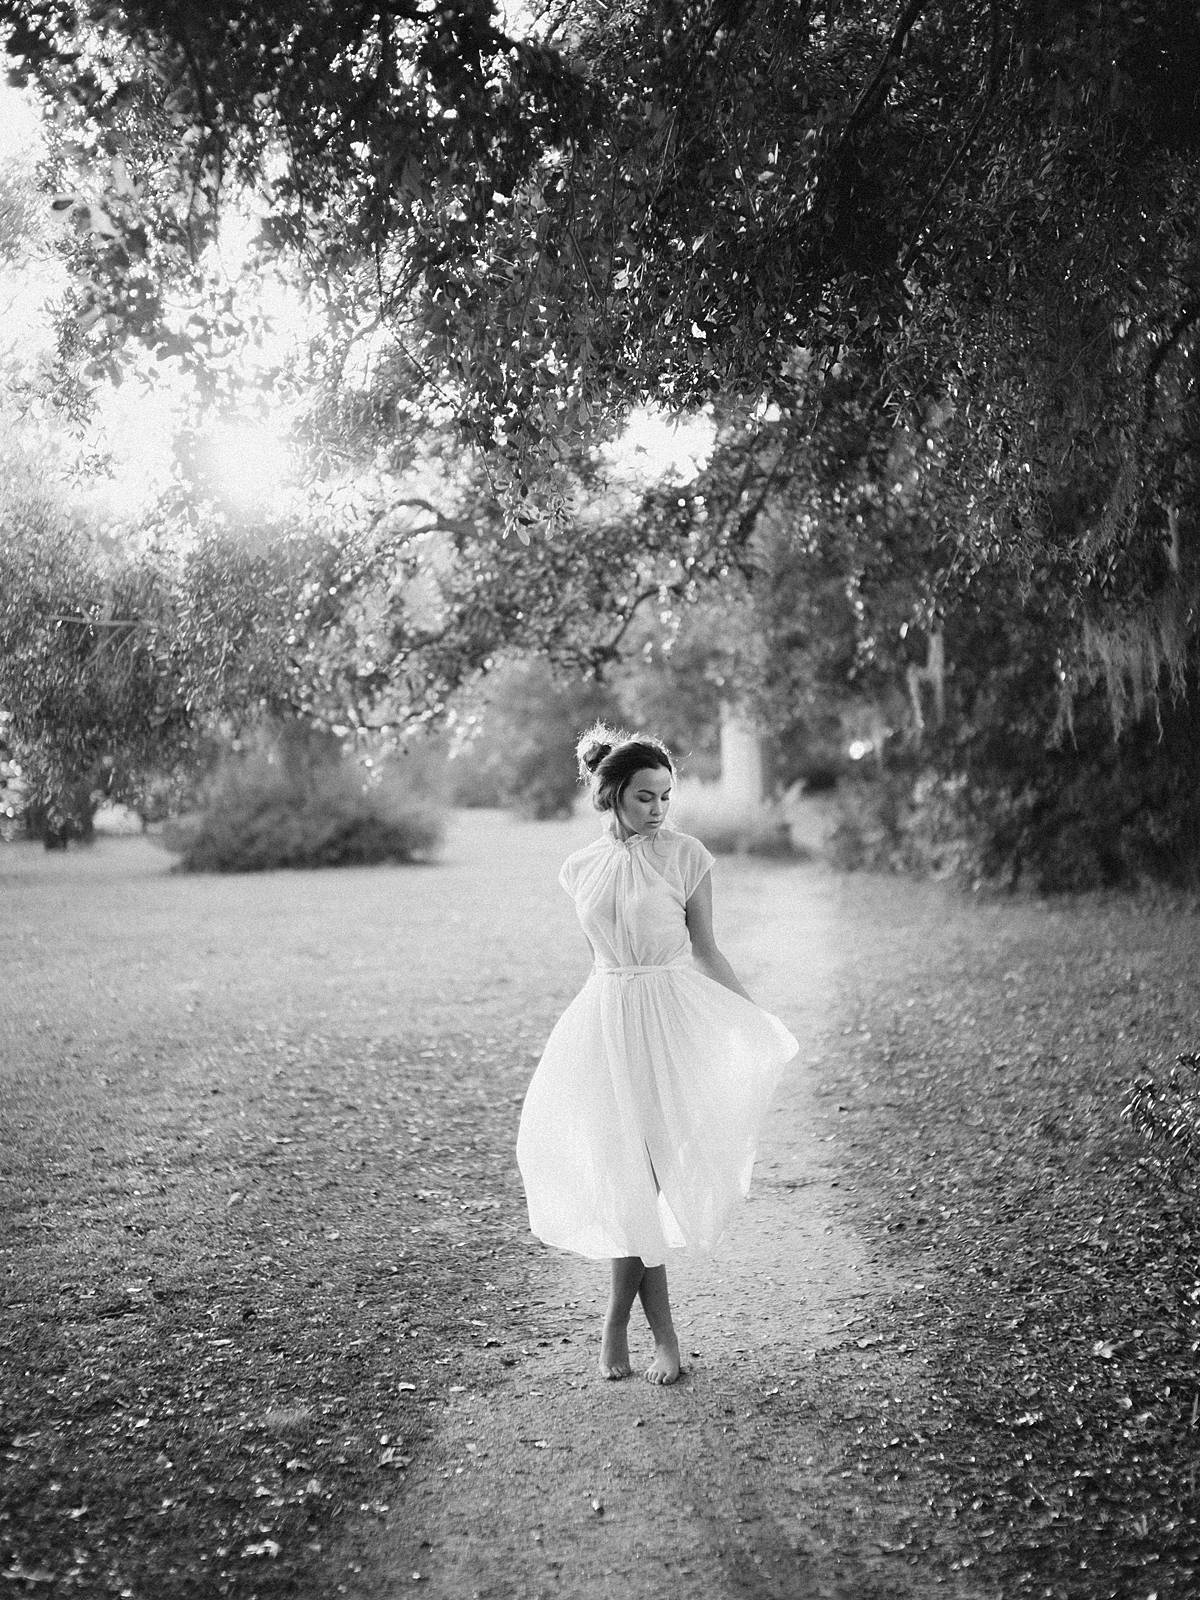 1911 paulina hampton park charleston fall portraits sony leica 00008_web